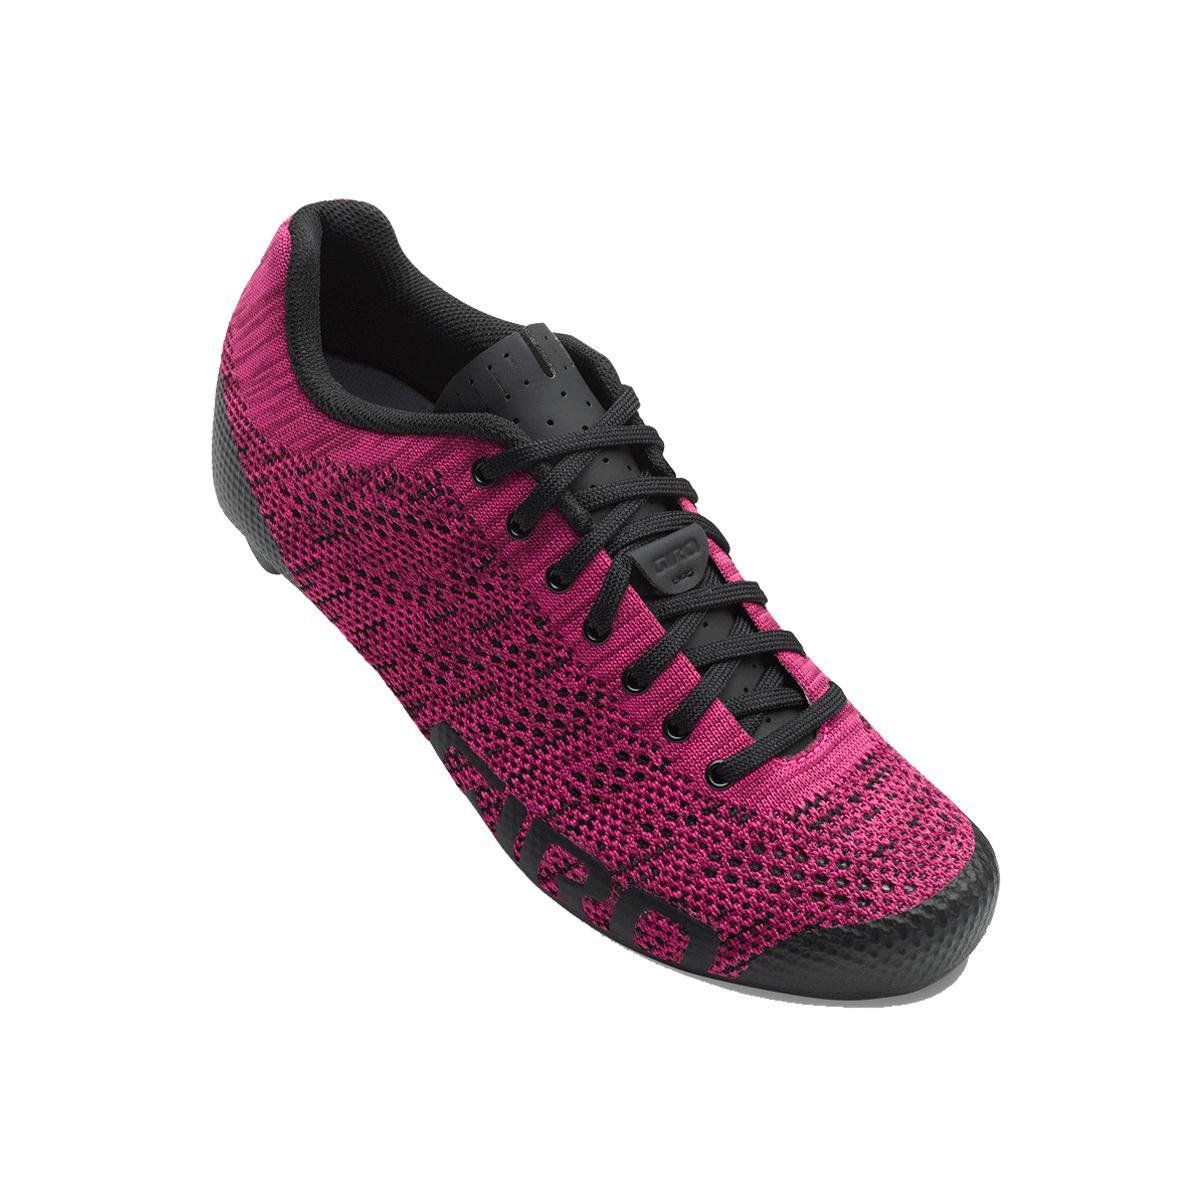 Giro Empire E70 Knit Cycling Shoe – Women s